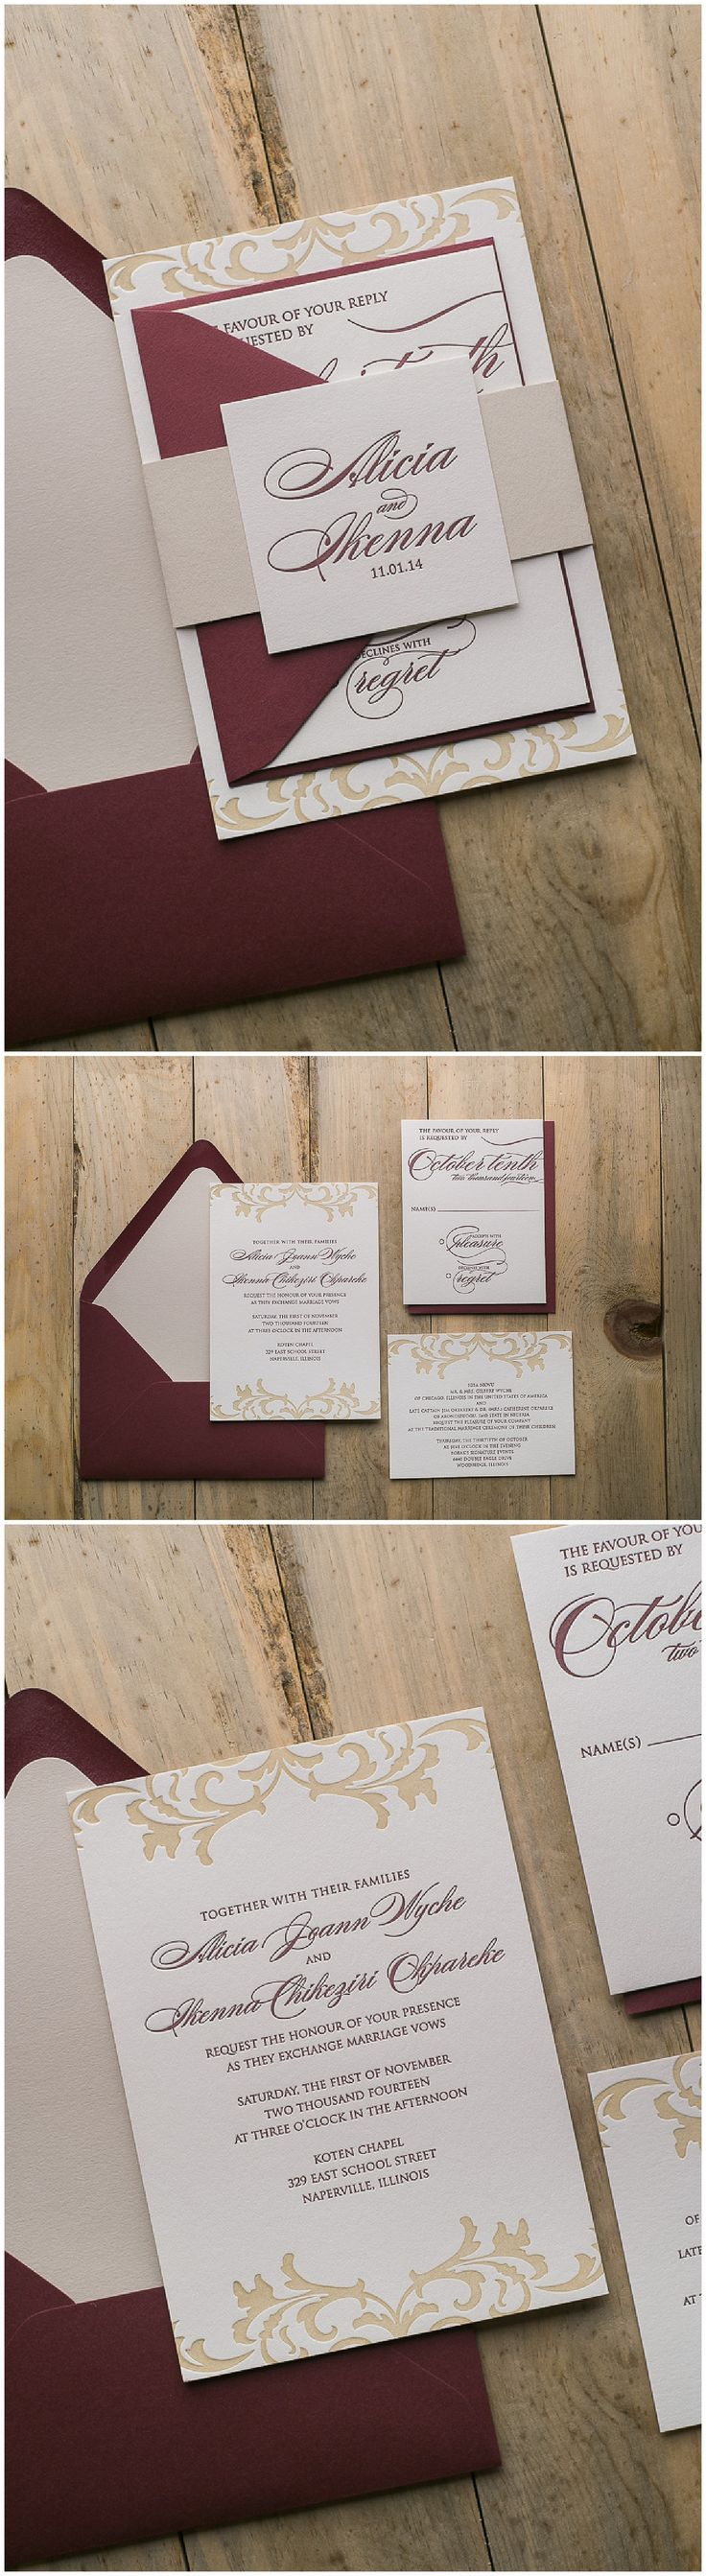 in wedding invitations is the man s name first%0A Real Wedding  Alicia and Ikenna